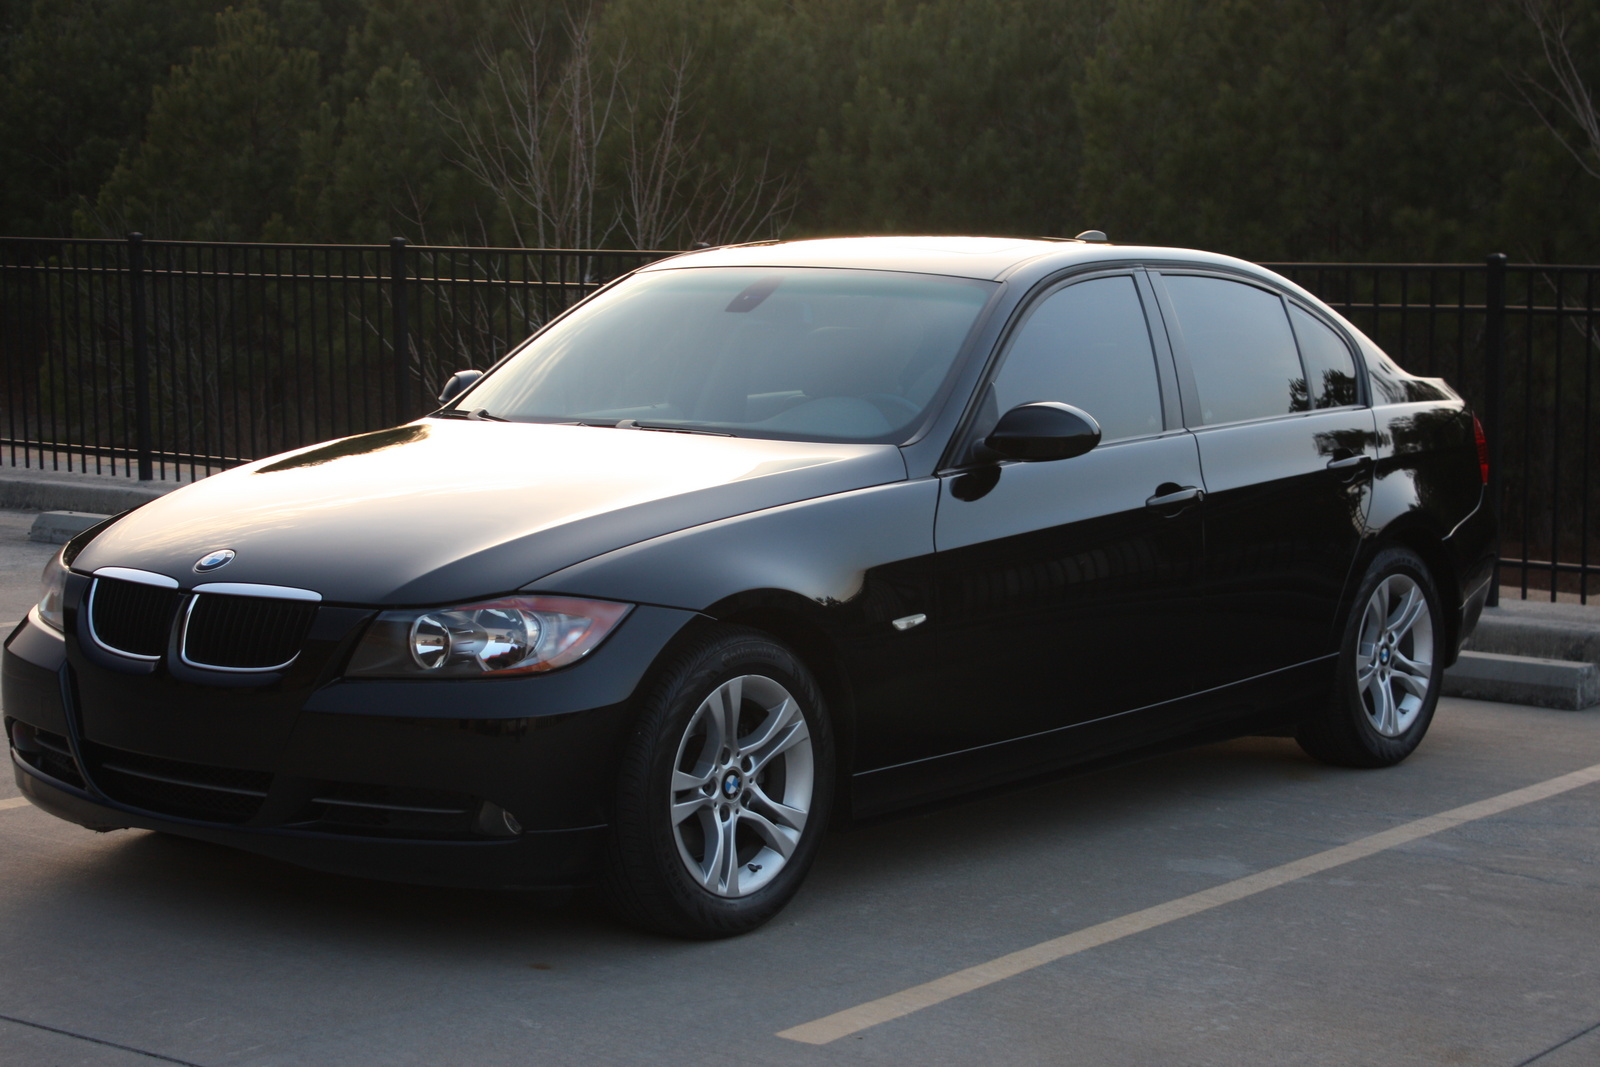 BMW 3 series 328xi 2008 photo - 9